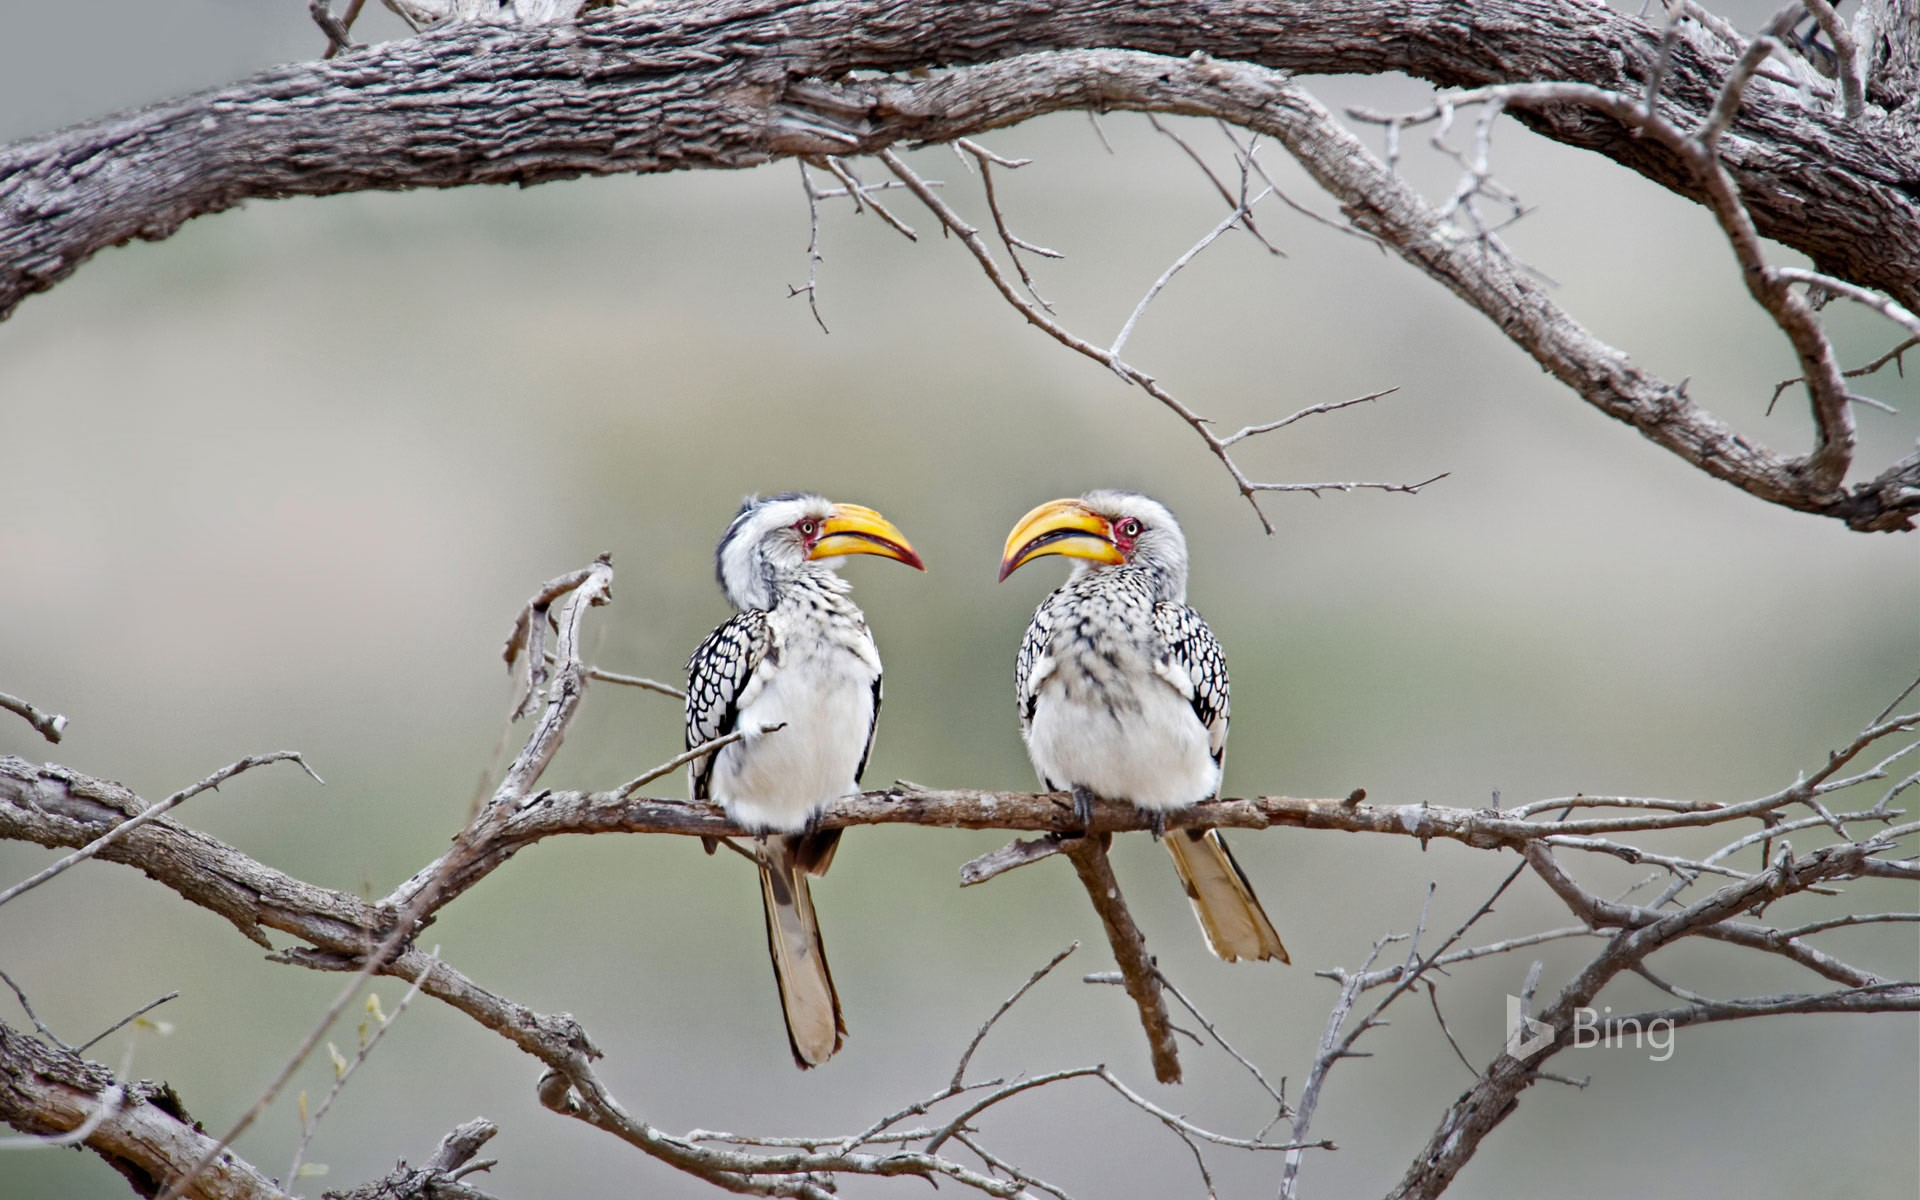 Southern yellow-billed hornbills in Kruger National Park, South Africa